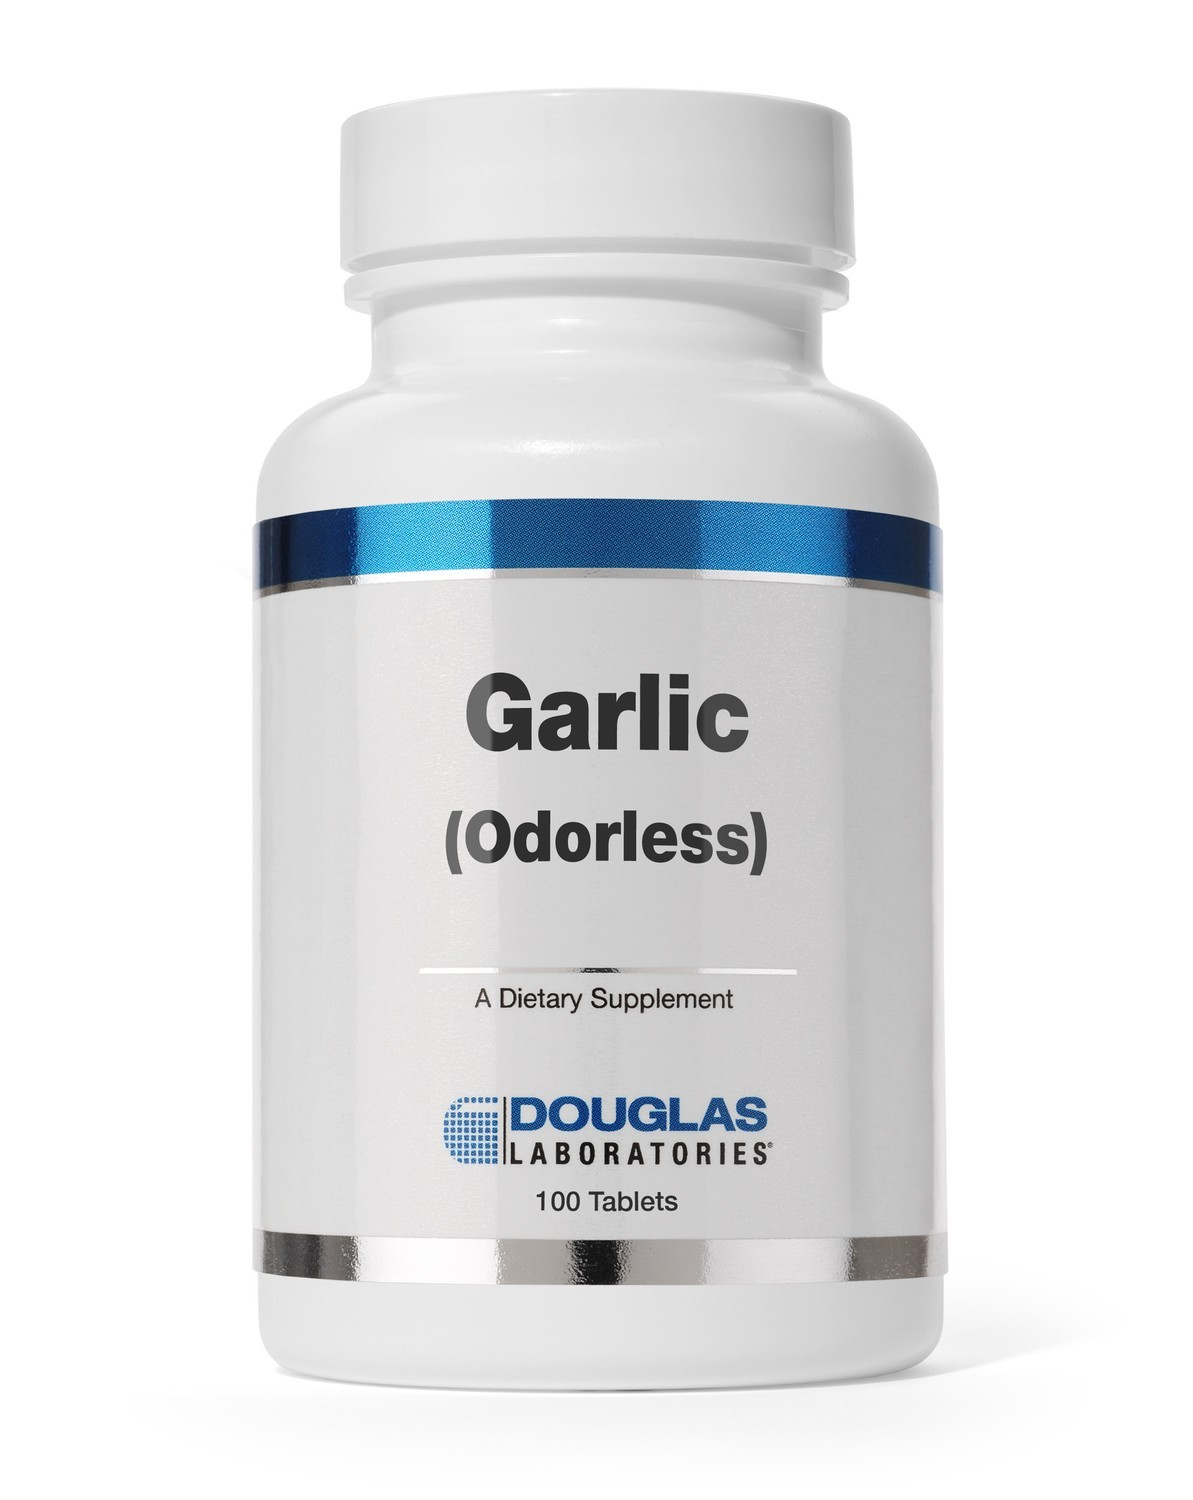 Garlic (Odorless)